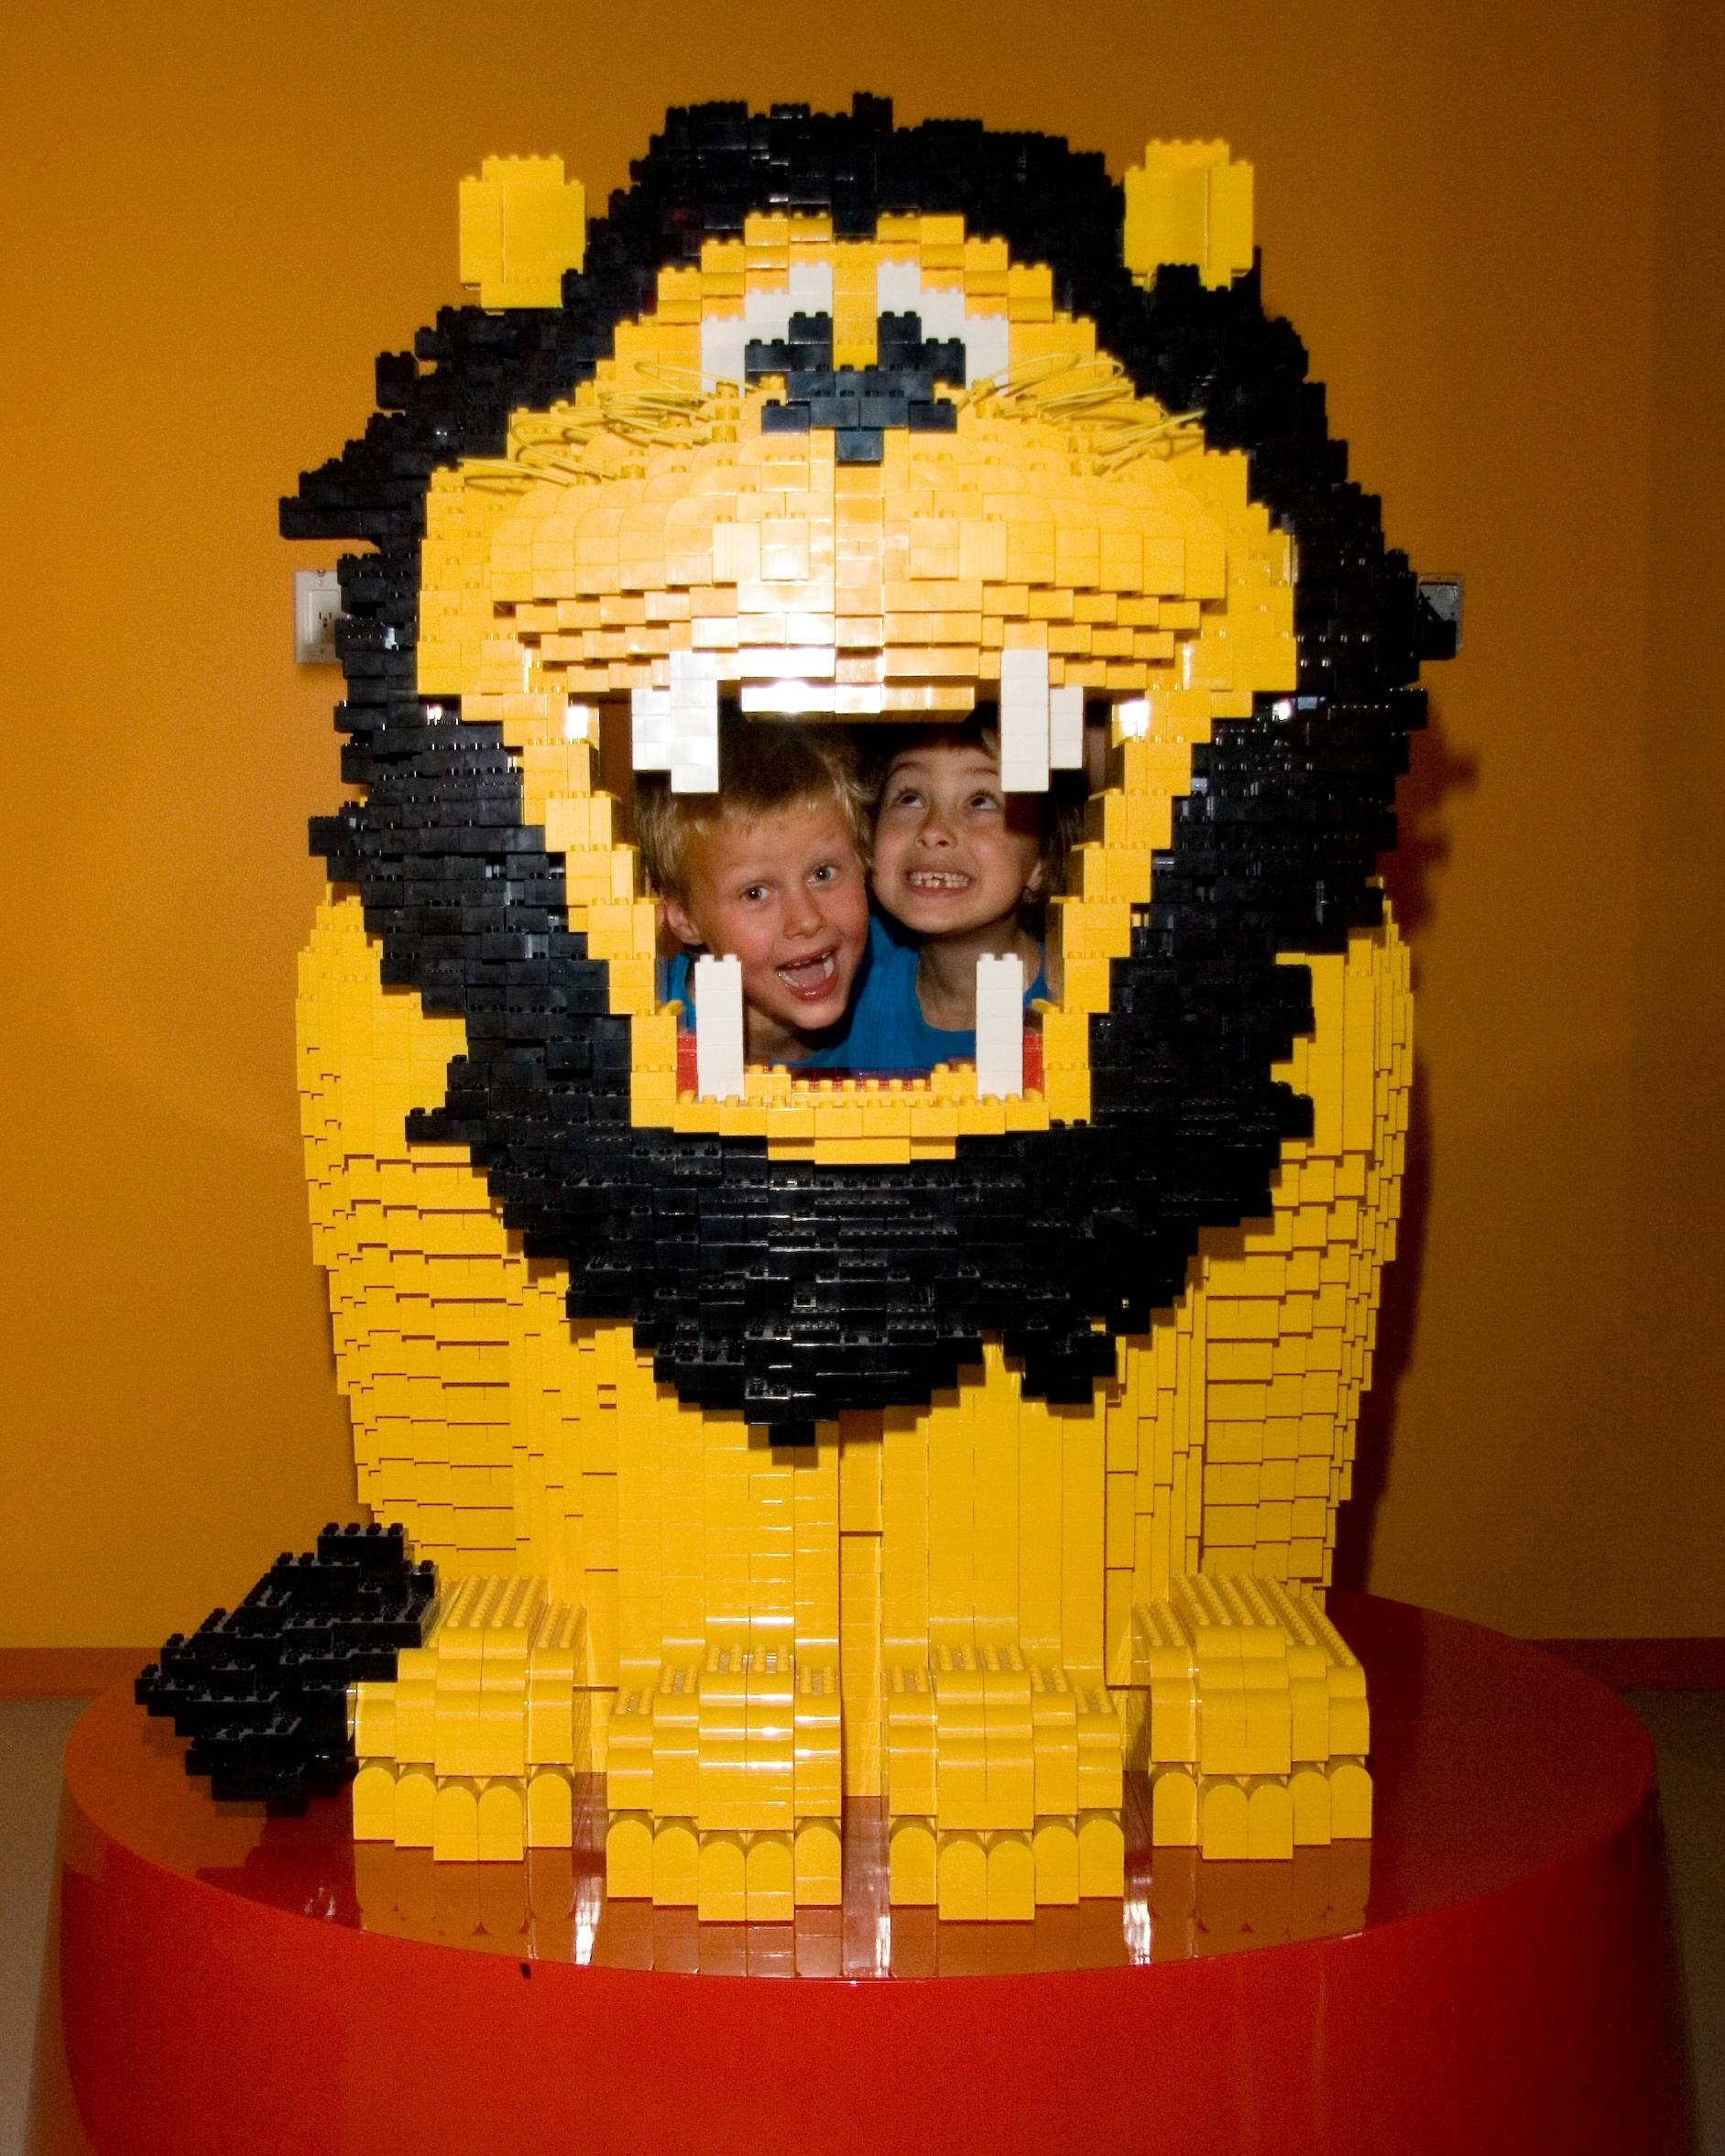 LEGOLAND Discovery Center Chicago is located at the Streets of Woodfield, 601 N. Martingale Rd. in Schaumburg.